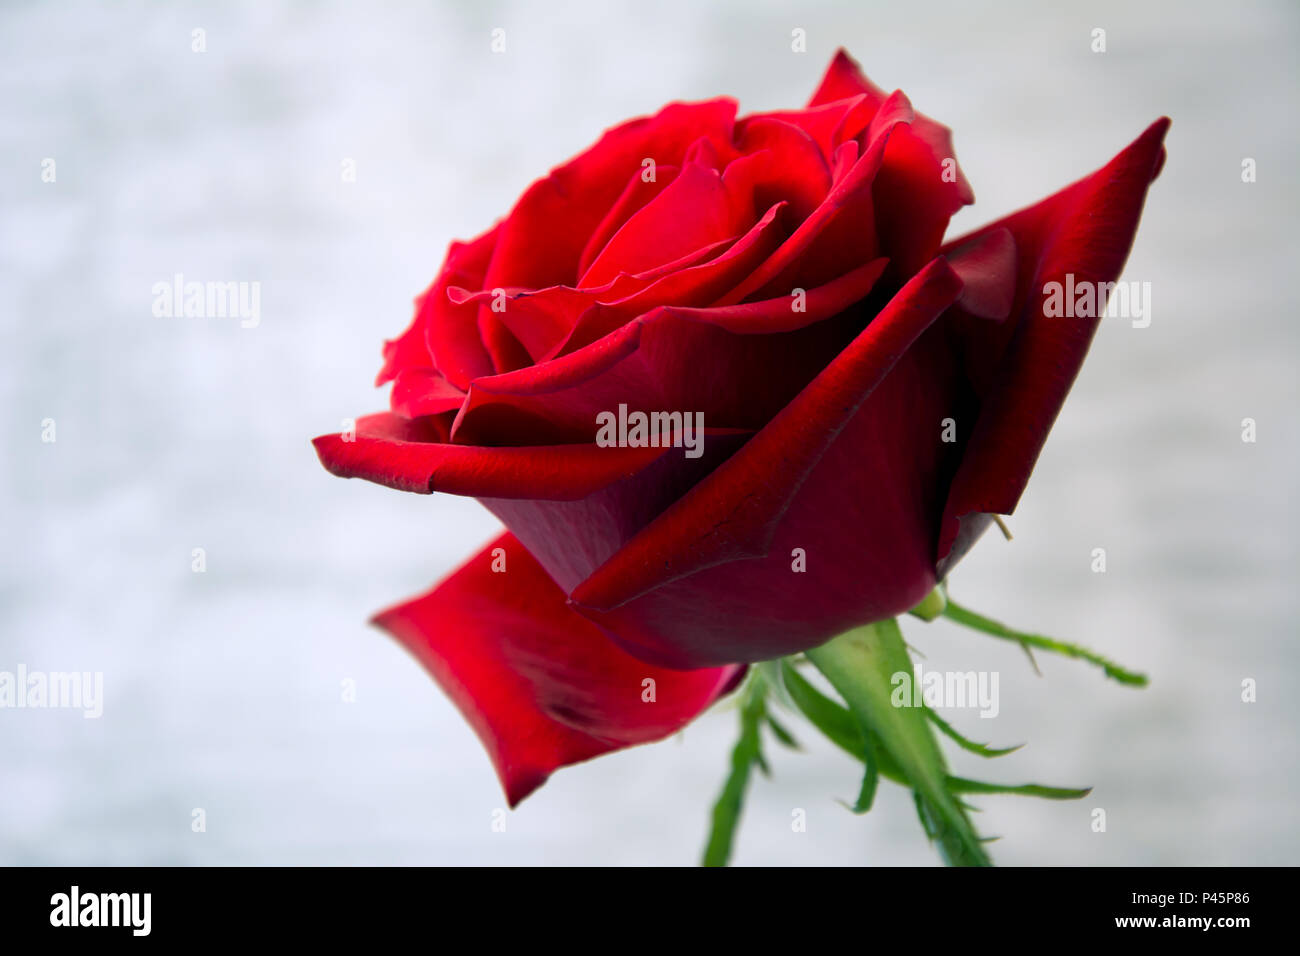 Closeup of beautiful, velvety red rose against white background - Stock Image